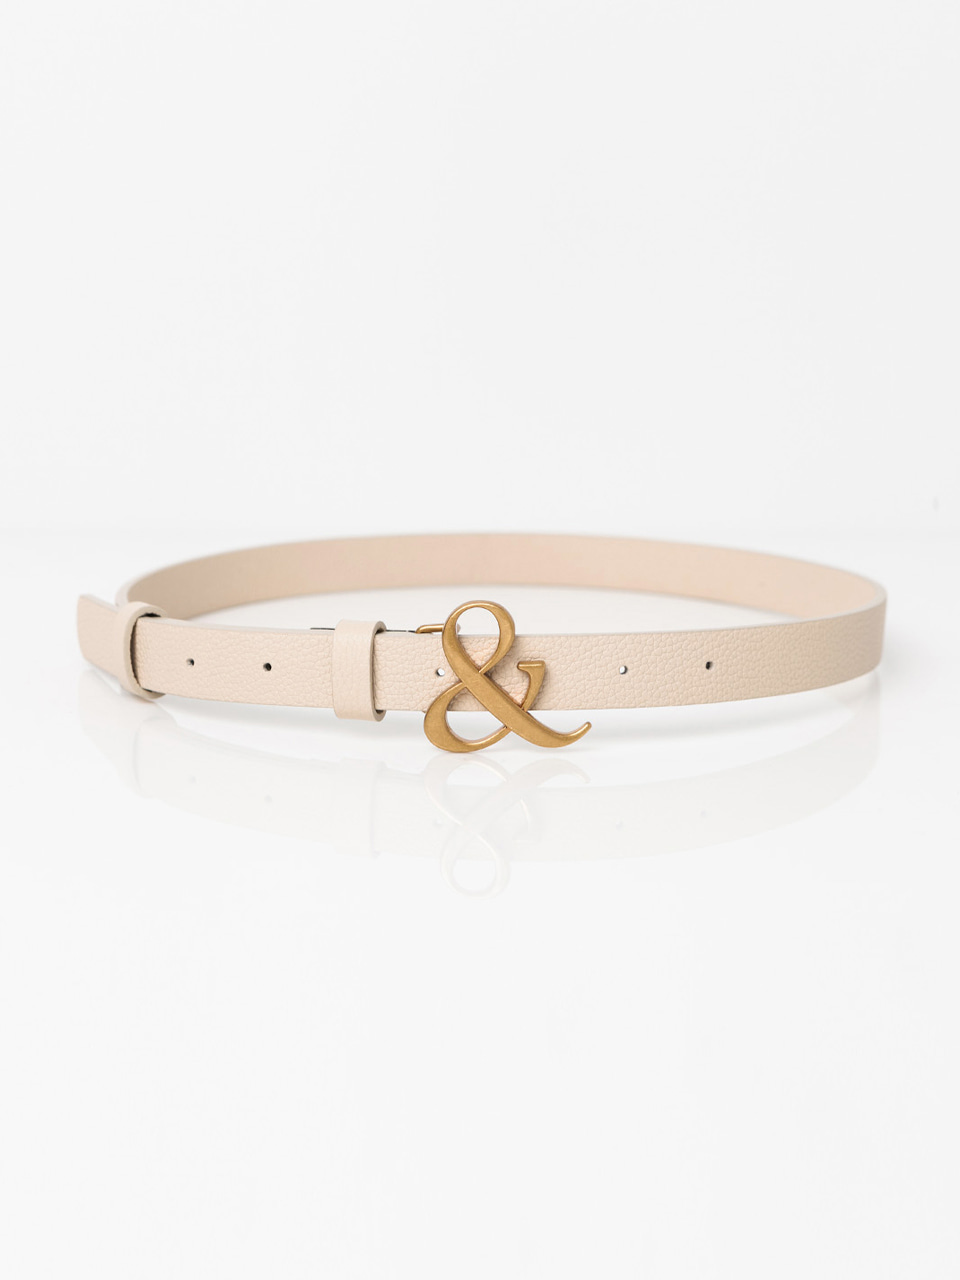 [ABCME5002M] AMPERSAND BUCKLE SLIM BELT_IV